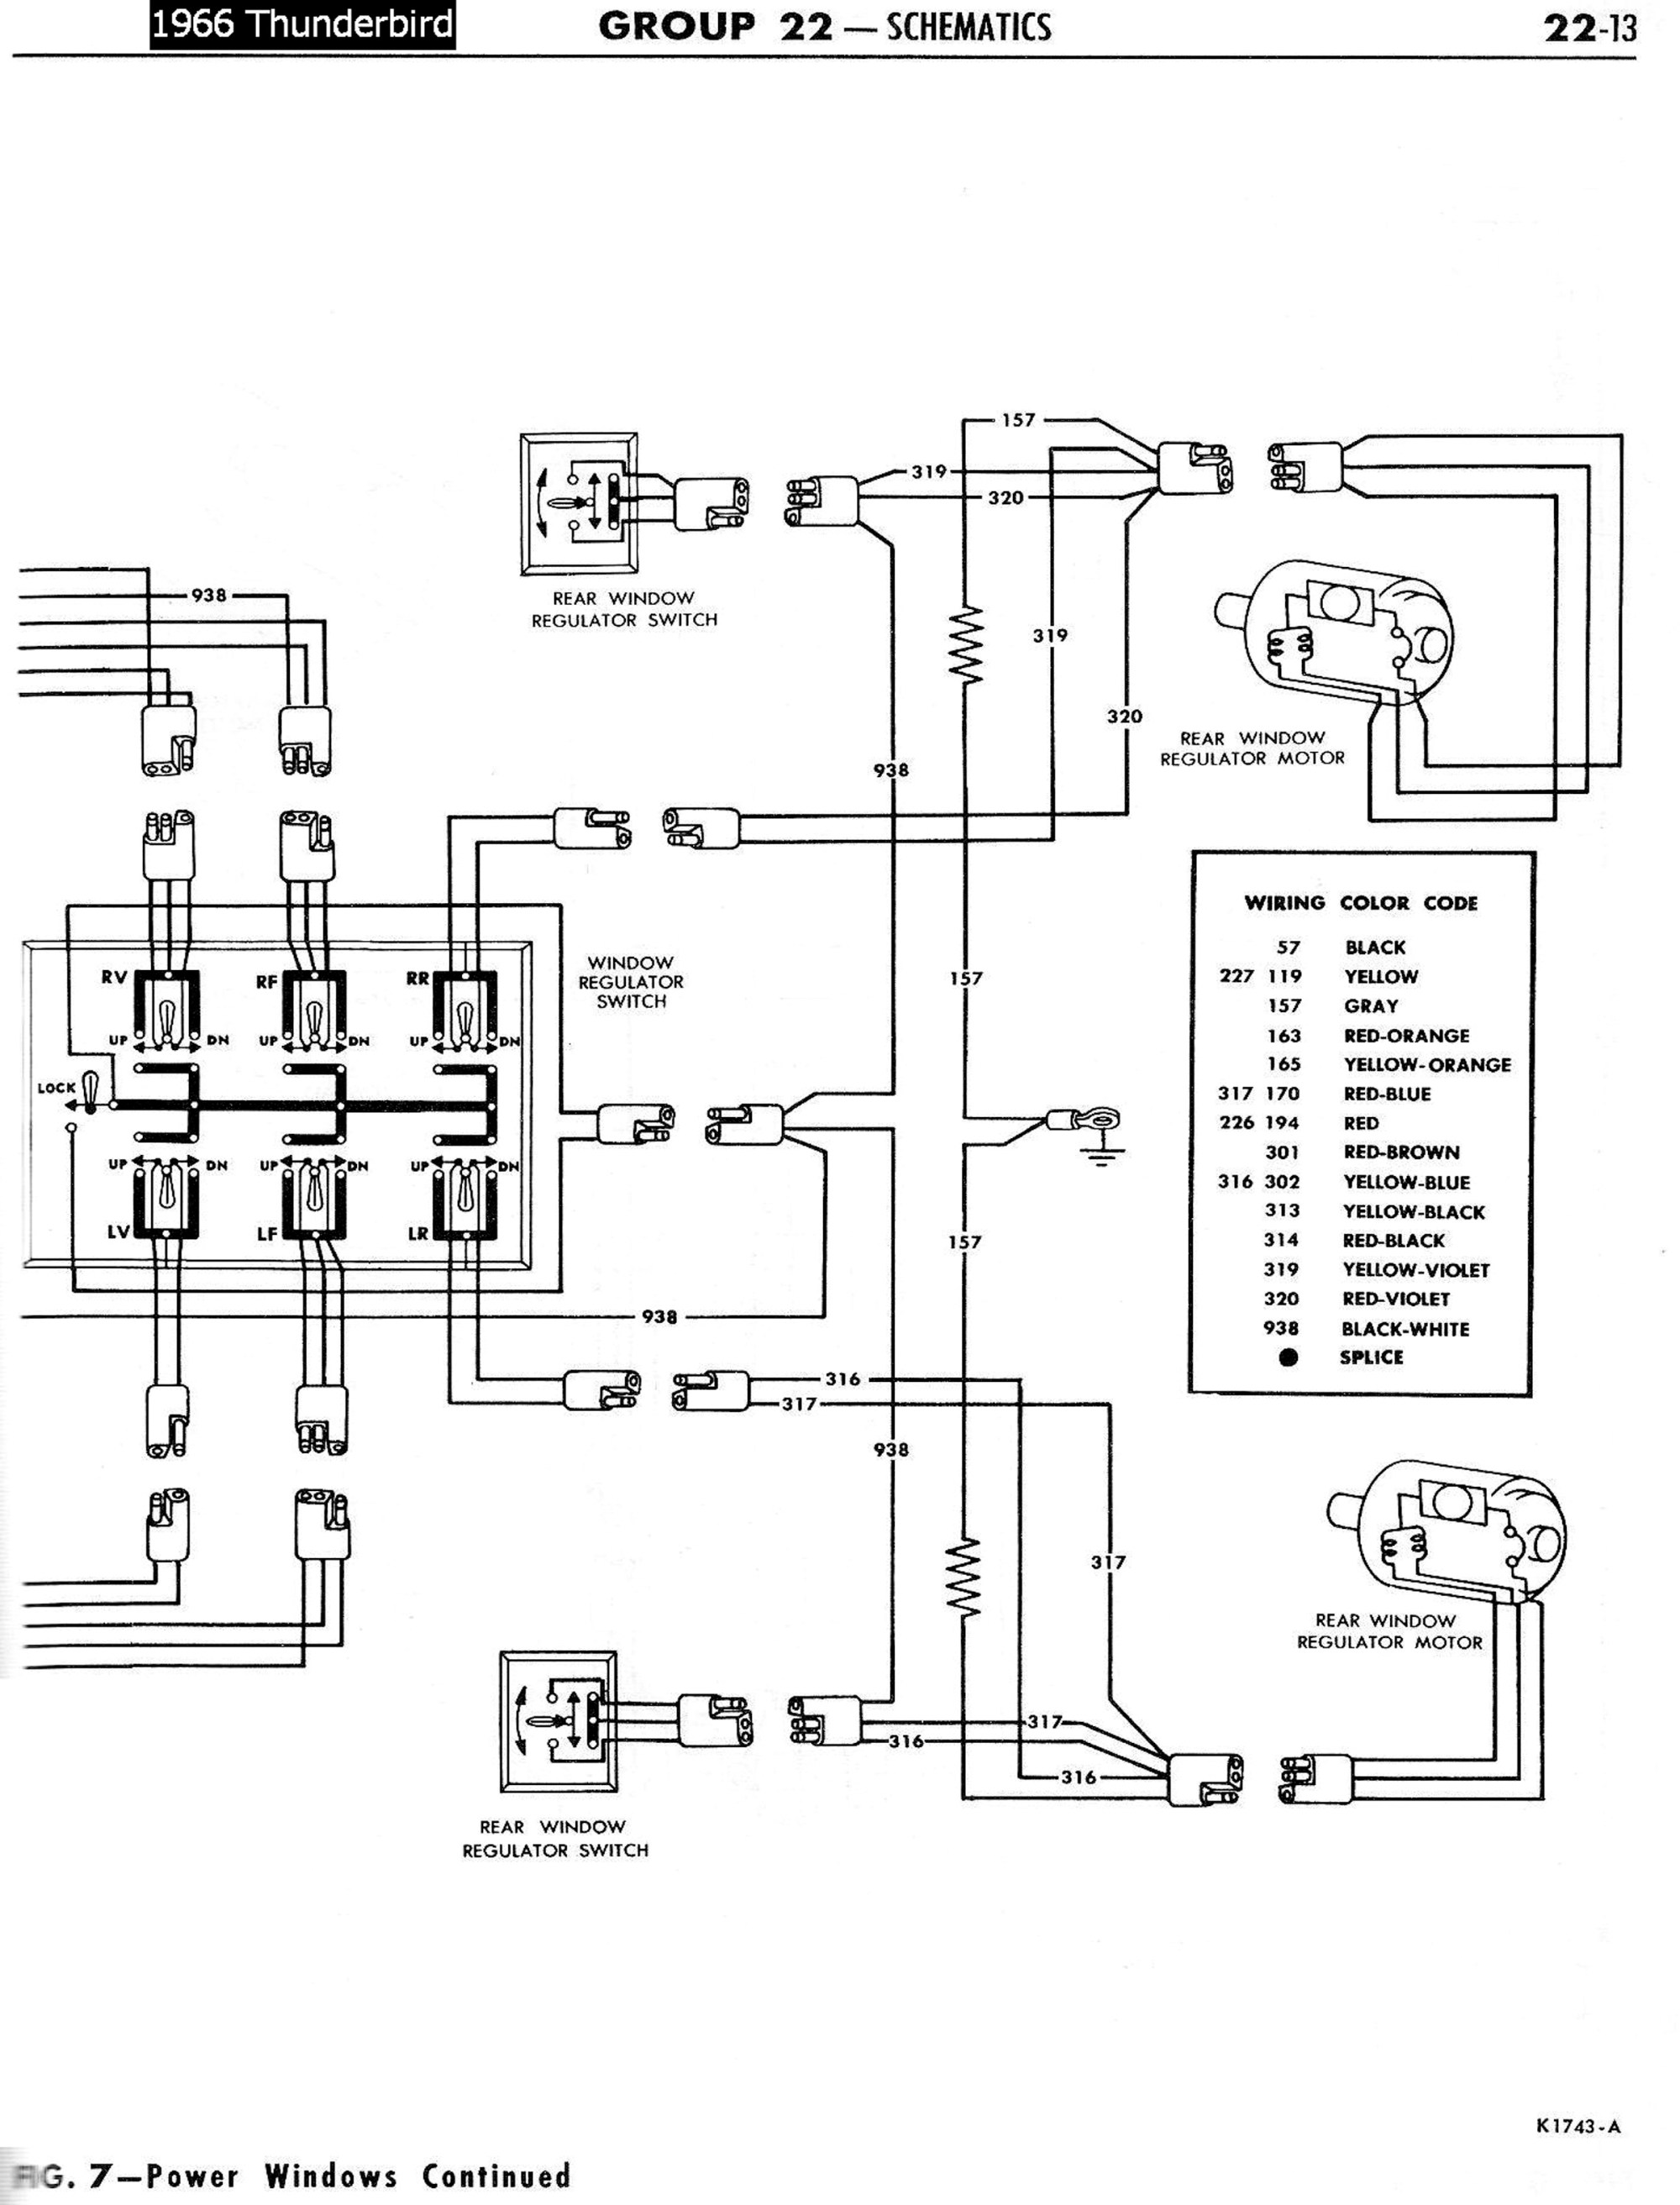 hight resolution of 1958 68 ford electrical schematics rh squarebirds org 70 thunderbird 66 thunderbird